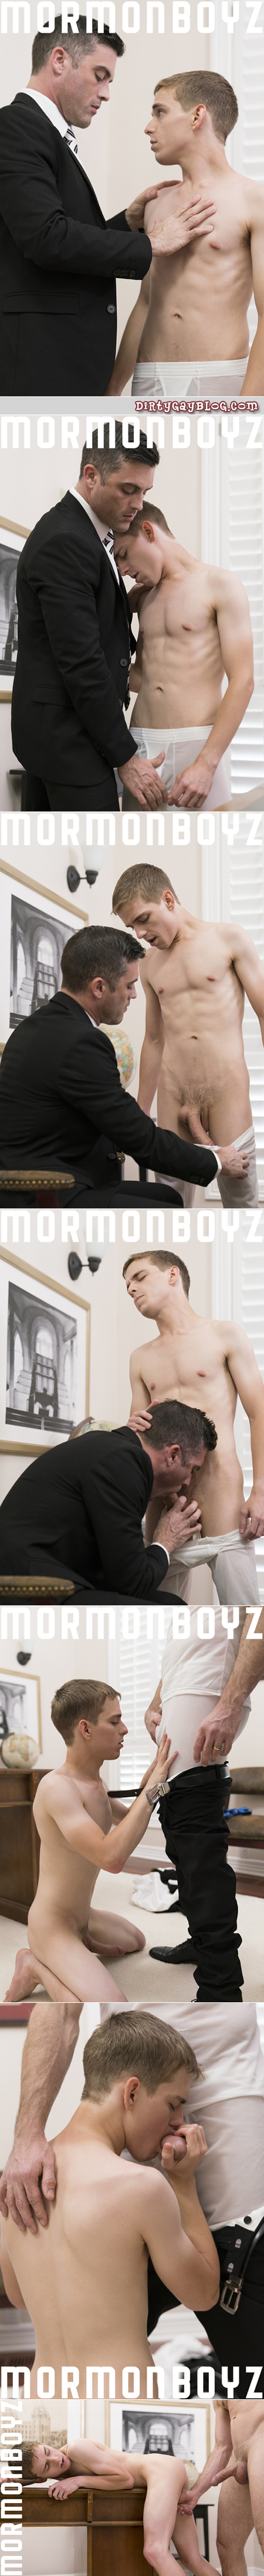 Mormon Bishop strips an Elder boy out of his temple garment to have gay sex with him.